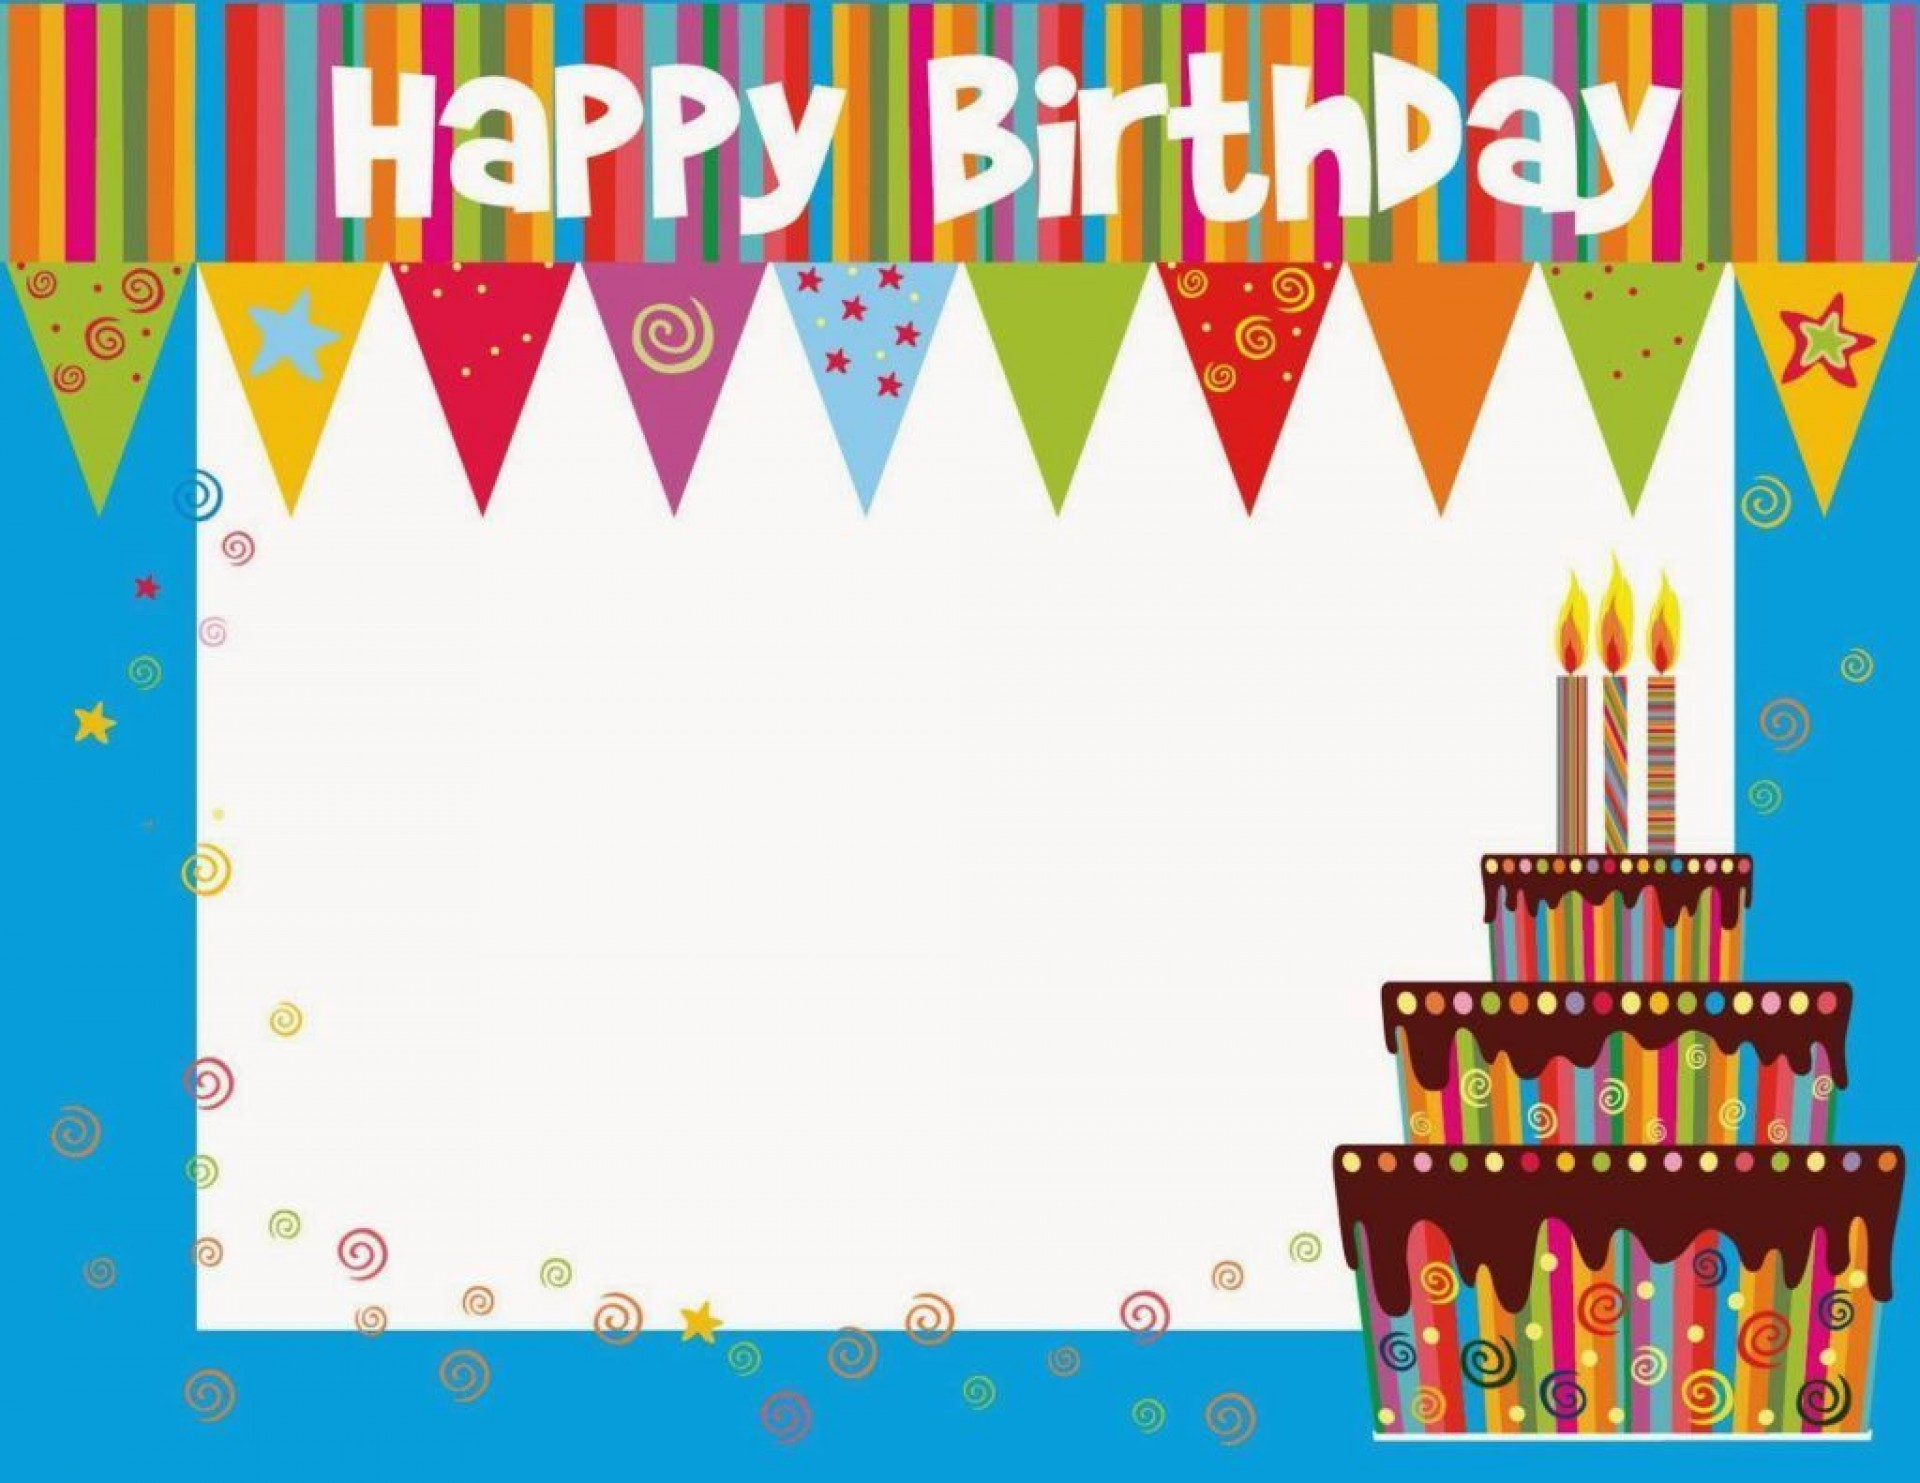 001 Awful Birthday Card Template Photoshop Concept  Greeting Format 4x6 Free1920